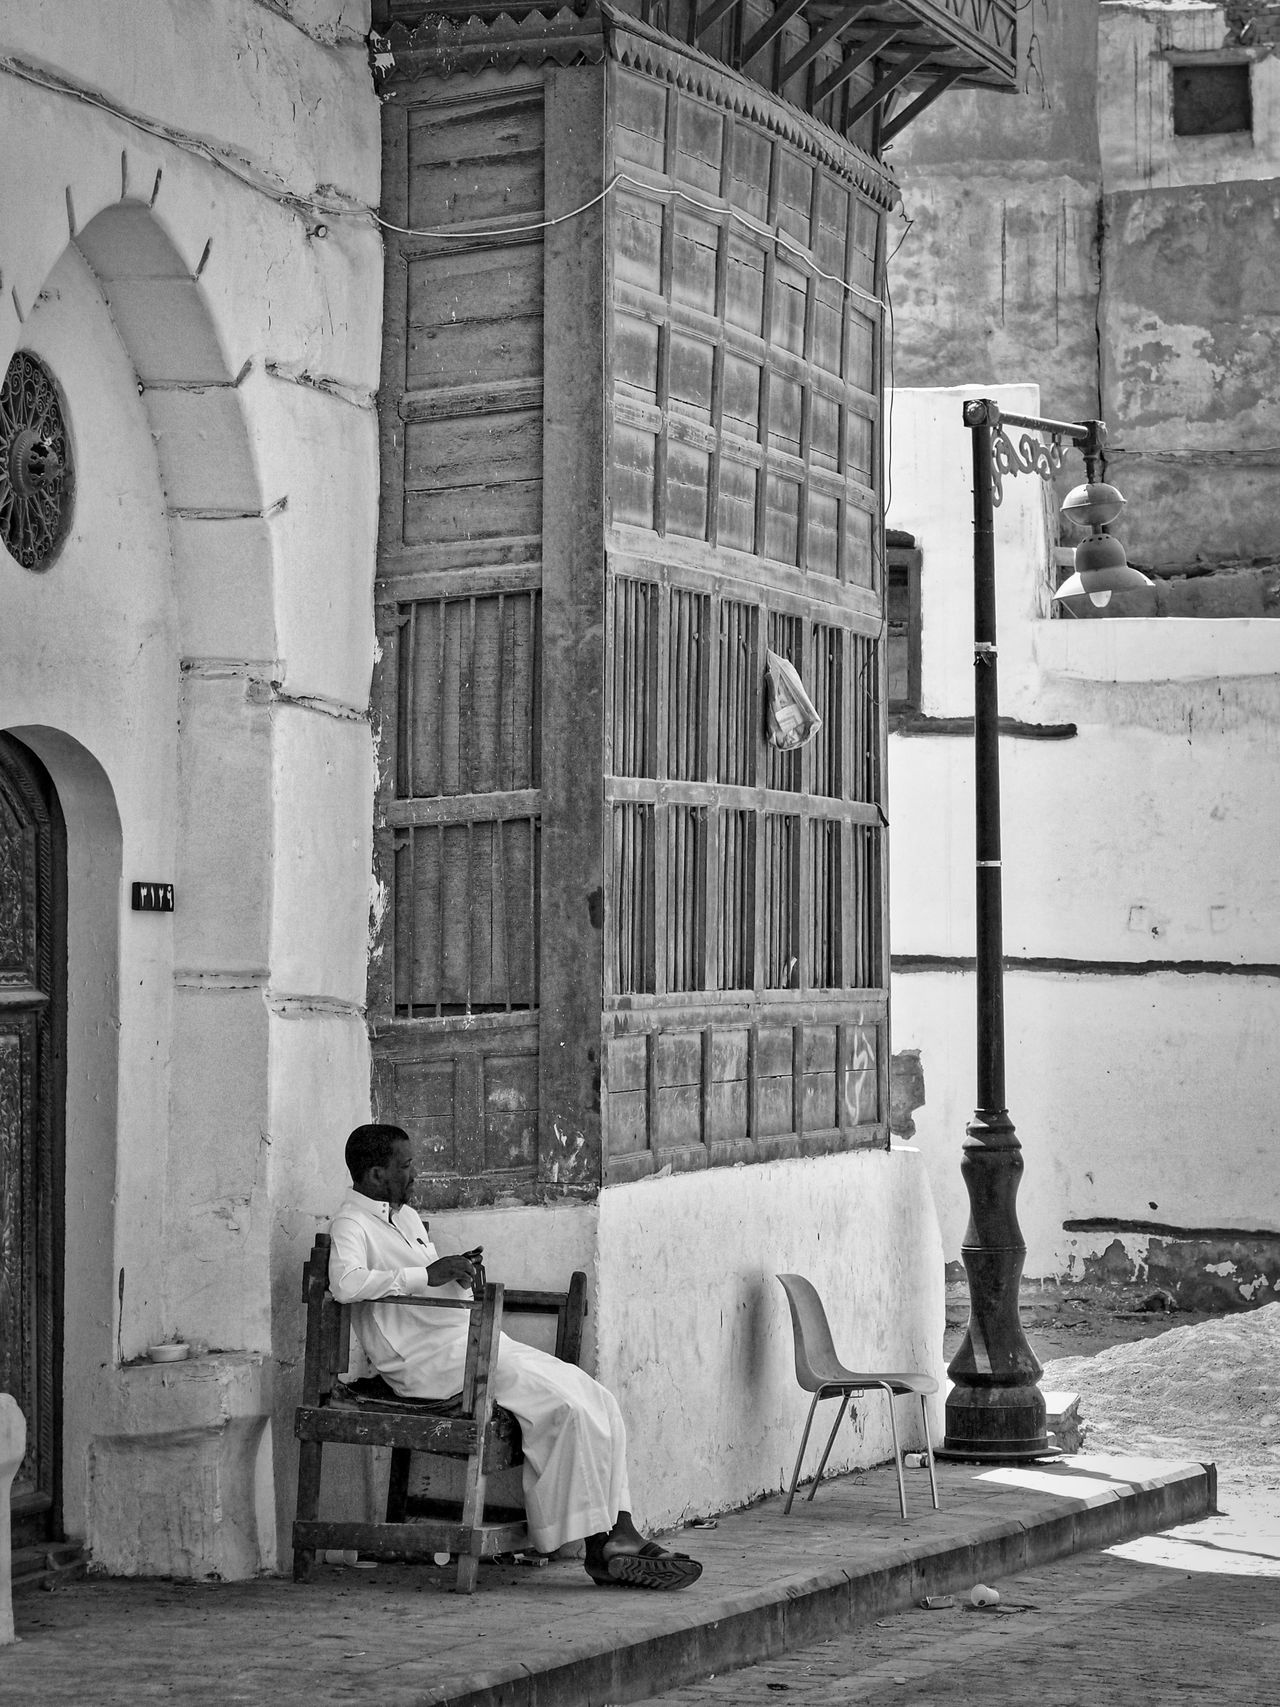 Arab Arabic Arabic Architecture Arabic Style Architecture Built Structure City Life City Street Cityscape EyeEm Best Shots - Black + White Jeddah Old But Awesome Old House Old Jeddah Old Town People People And Places People Photography Saudi Arabia Simple Moment Sitting Street Photography Streetphotography Urban Lifestyle Worn Down Buildings